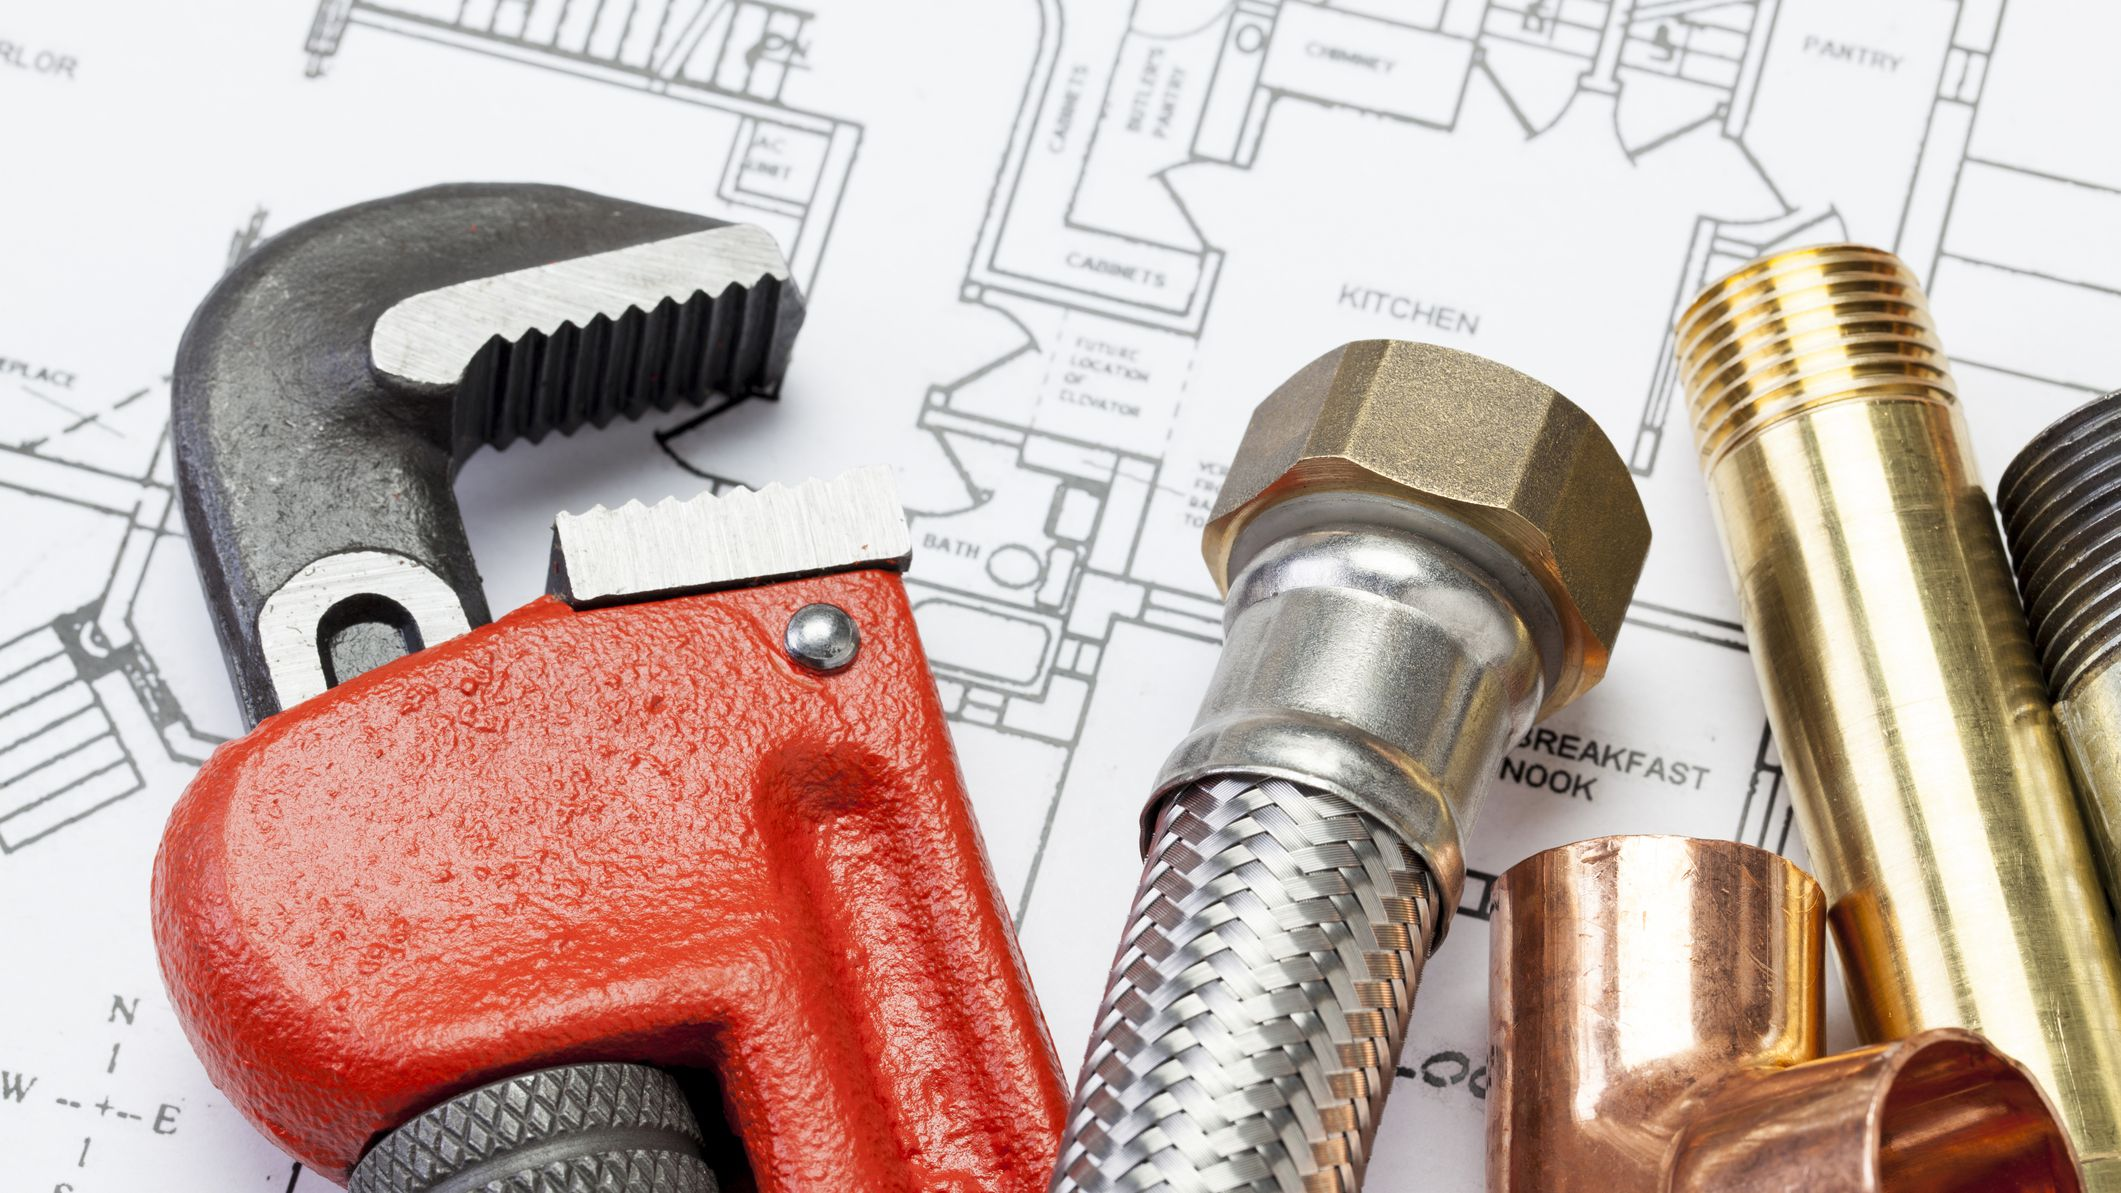 Ten Useful Tools And Materials For Plumbing Projects